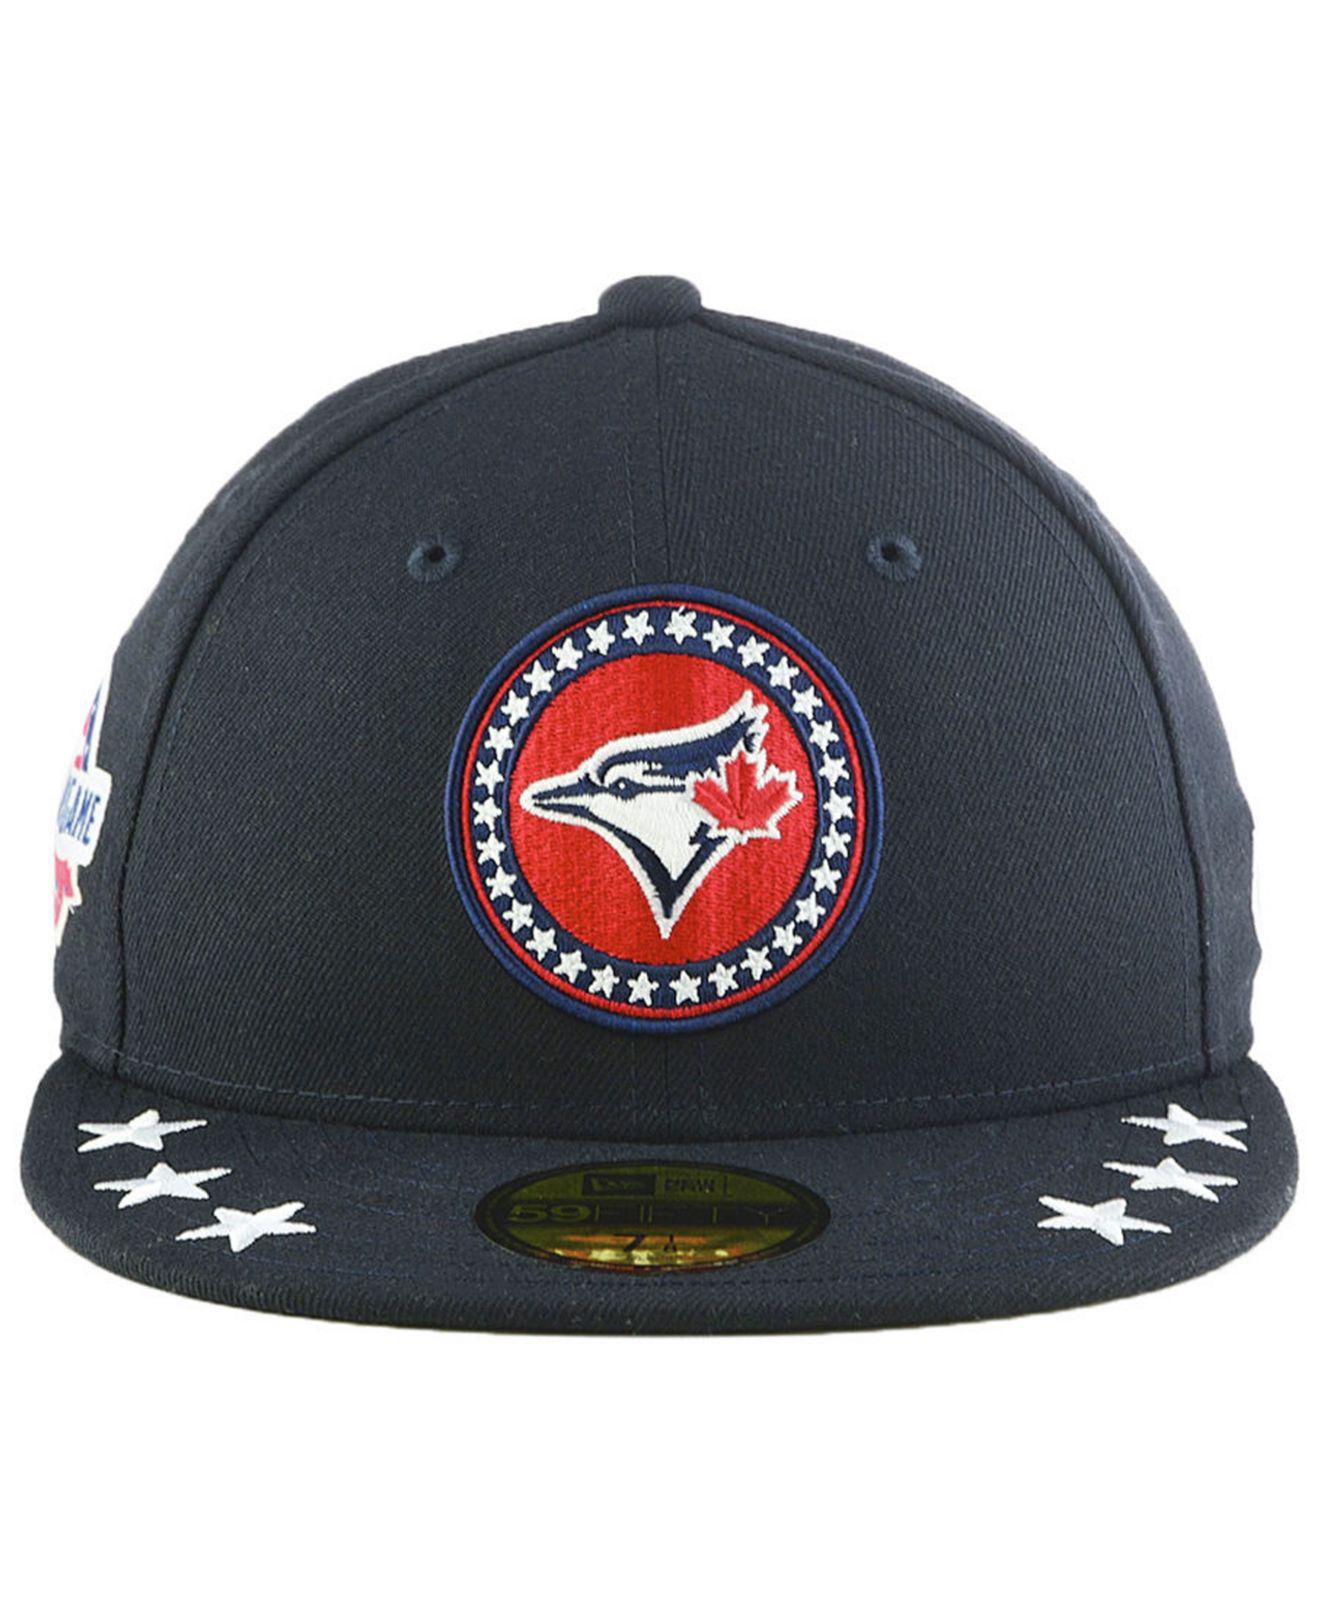 size 40 53bfe 174d9 Lyst - KTZ Toronto Blue Jays All Star Workout 59fifty Fitted Cap in Blue  for Men